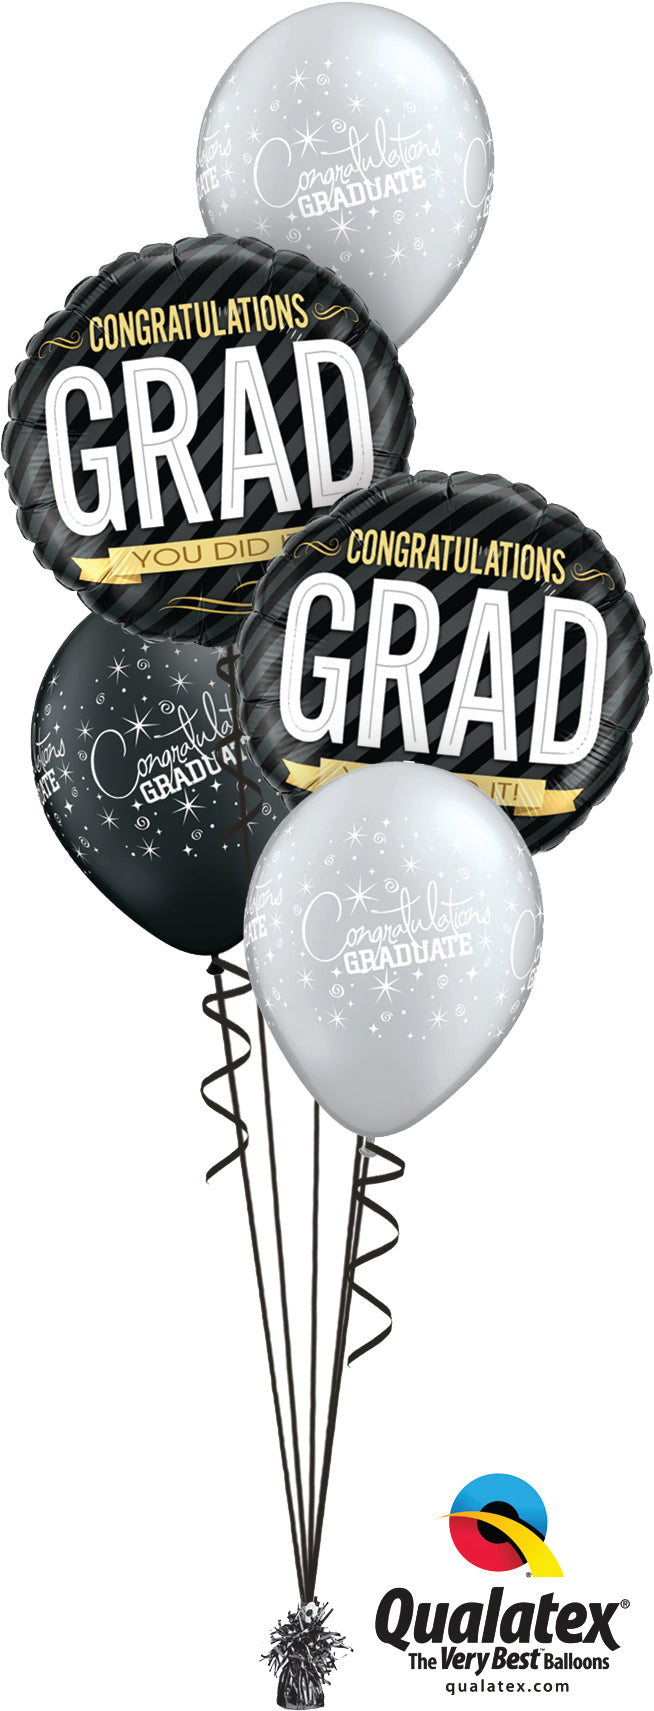 You the best Grad! - Balloon Express